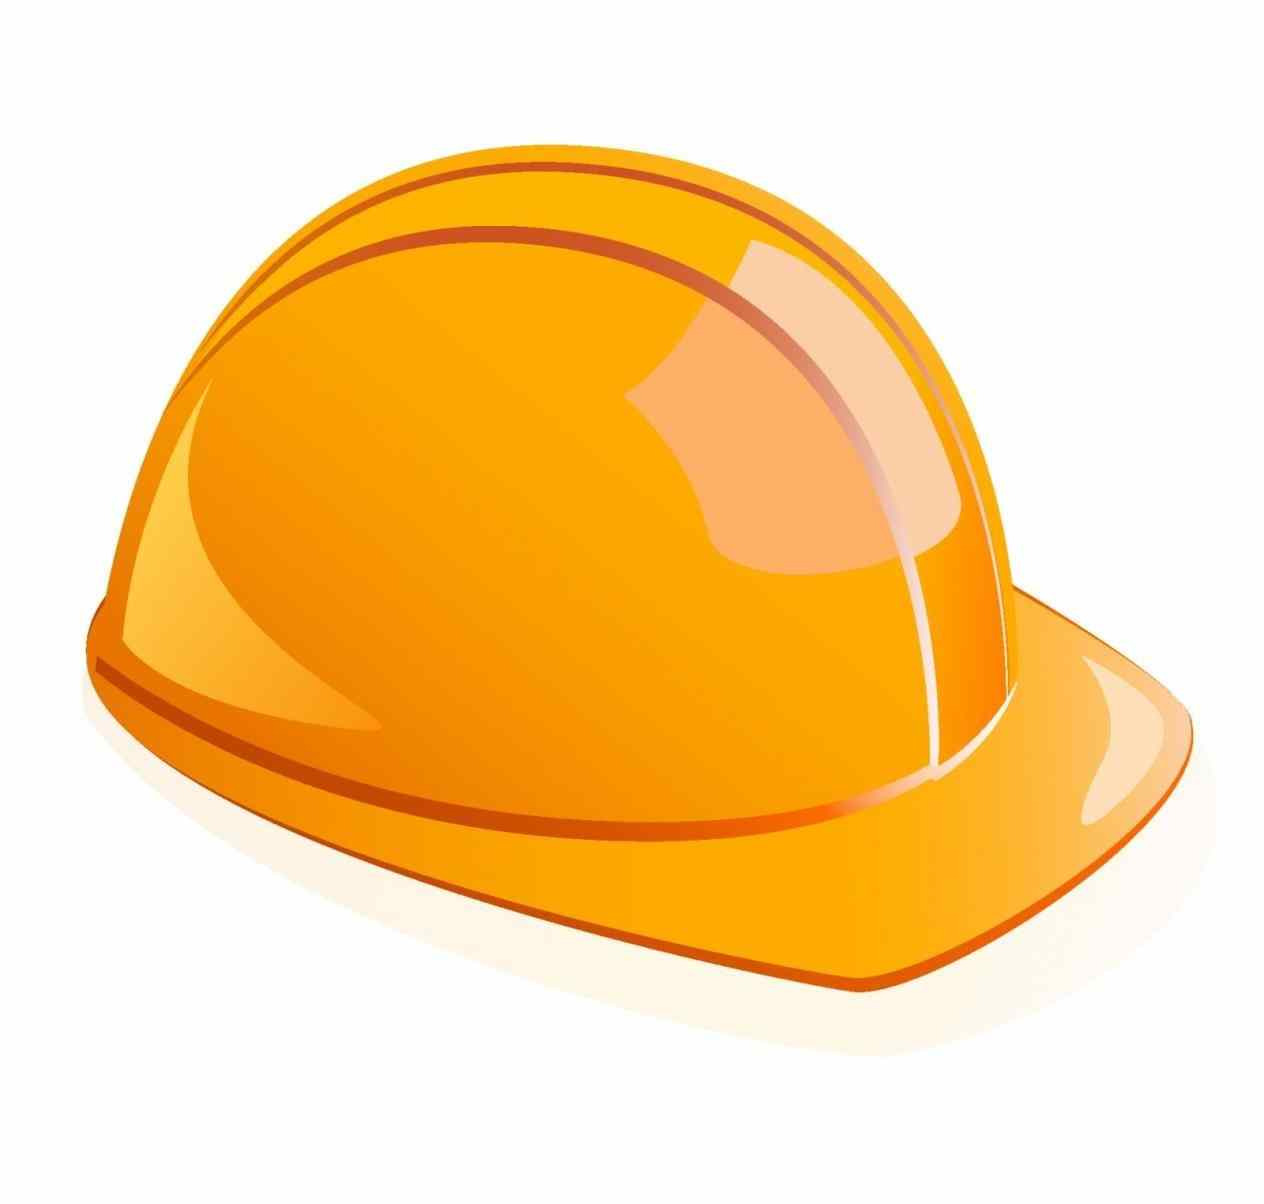 Construction Hat Drawing at GetDrawings.com.